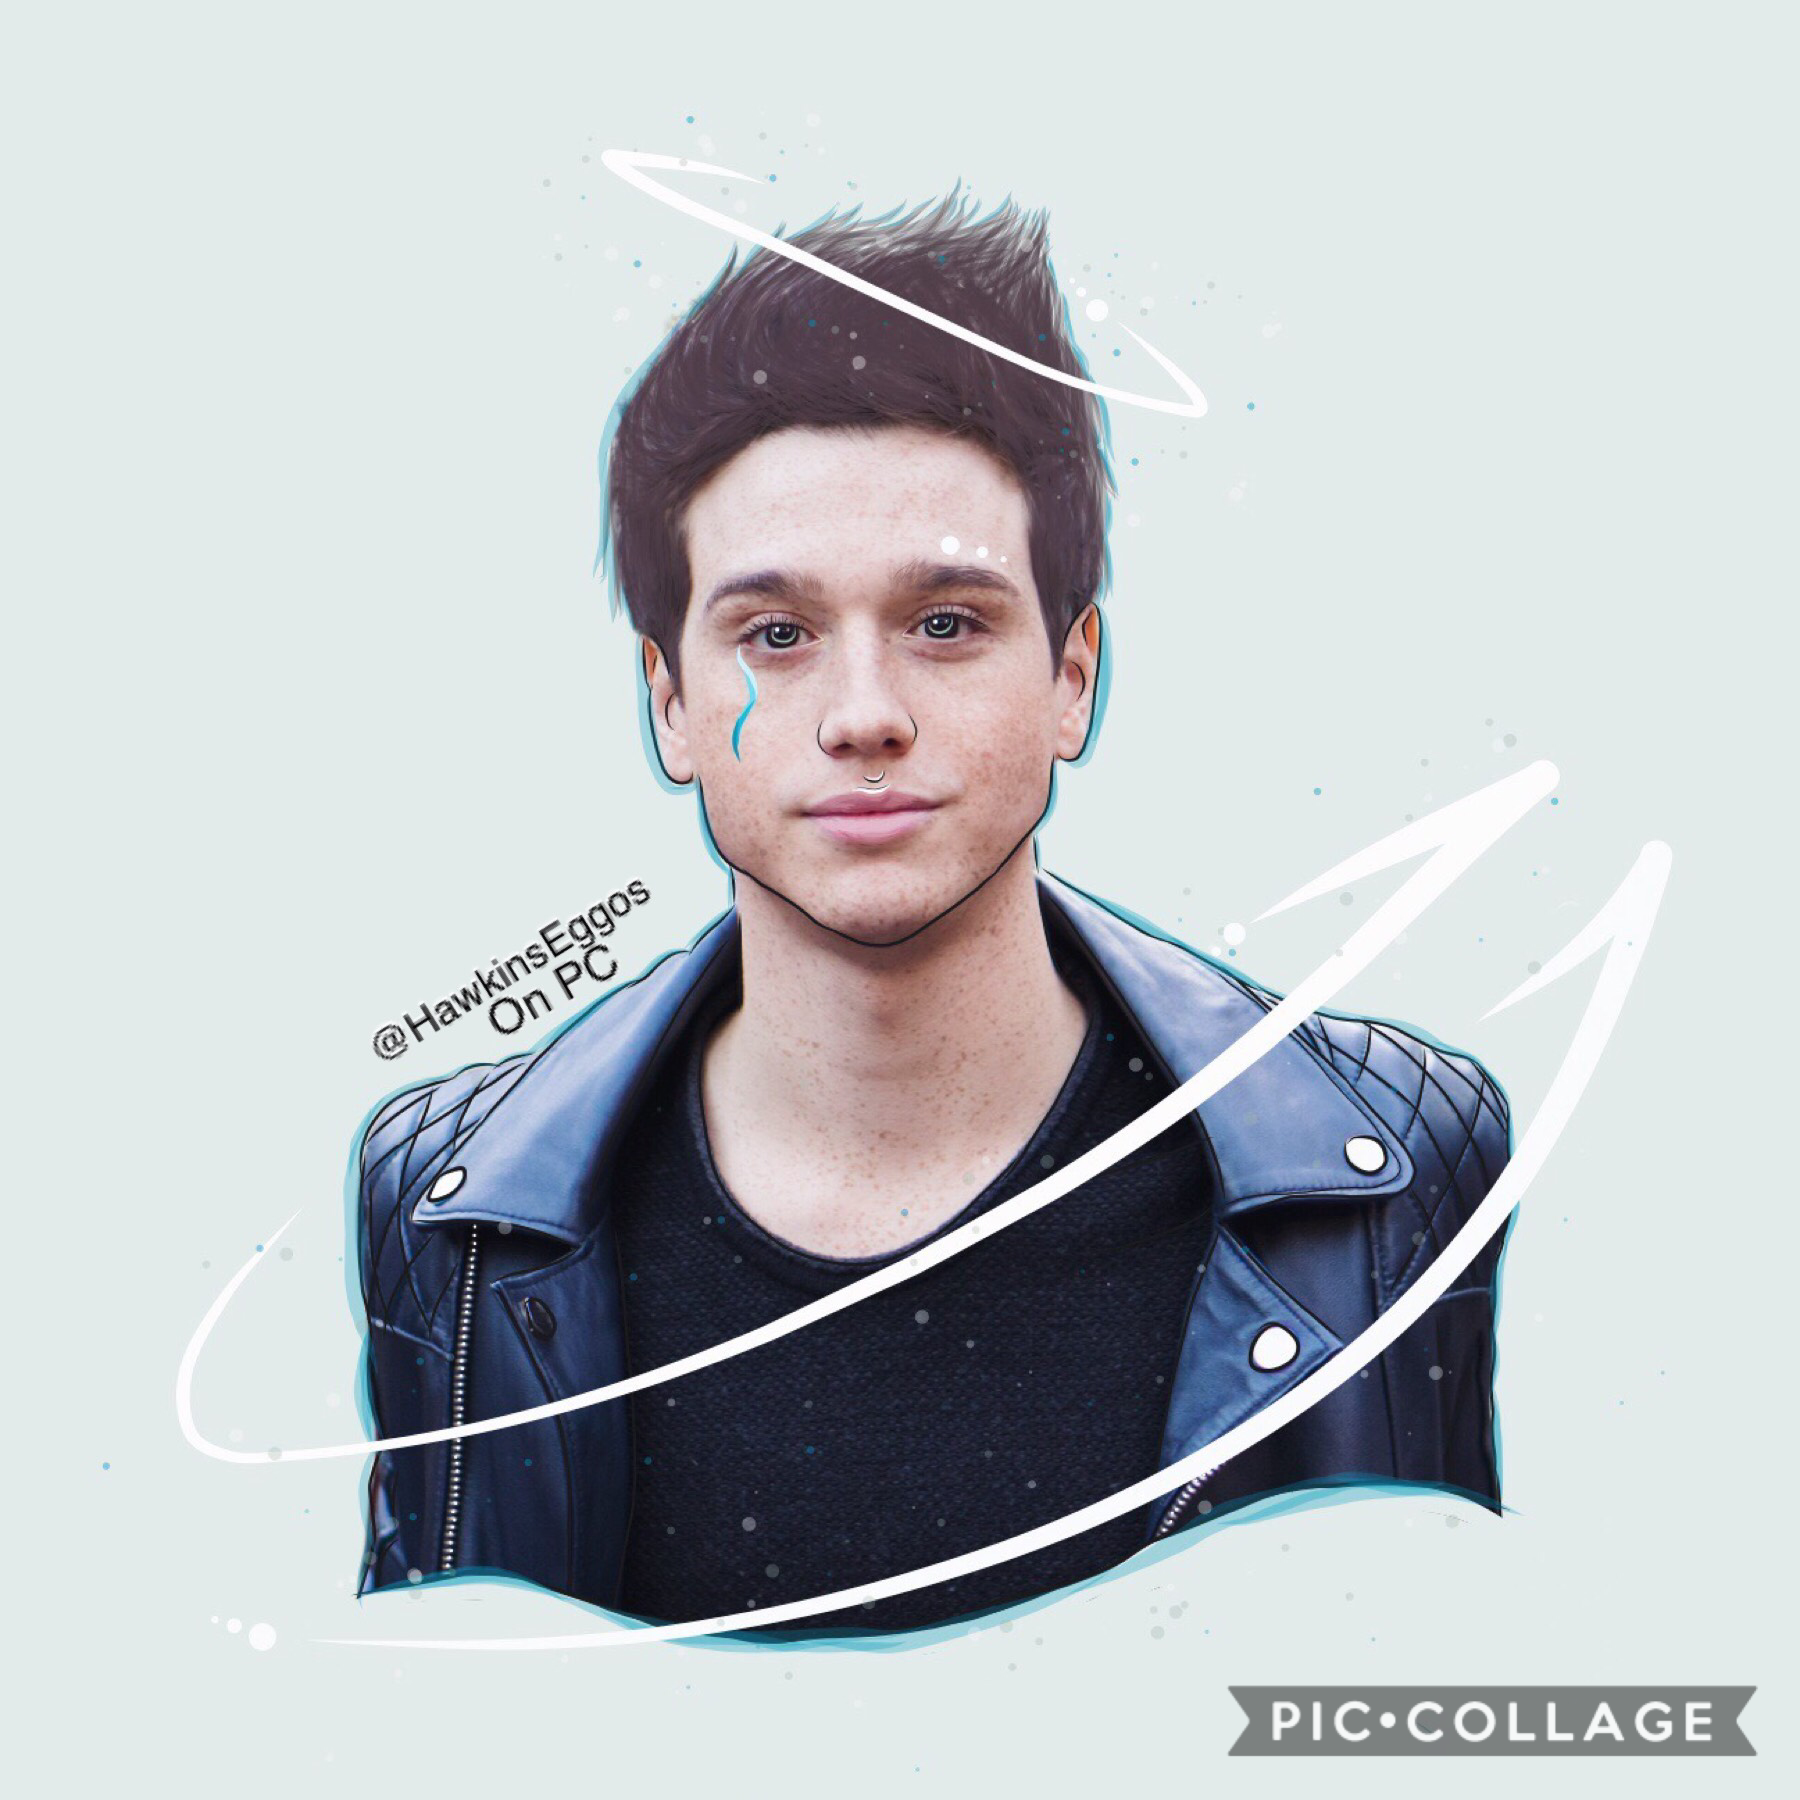 💙tap💙 If you don't know who this is, this is the wonderful Chester Rushing, who plays Tommy H. On stranger things! I've been making lots of outlines for my stranger things ig account, so (hopefully) I will post them in the next few days! The hair looks re